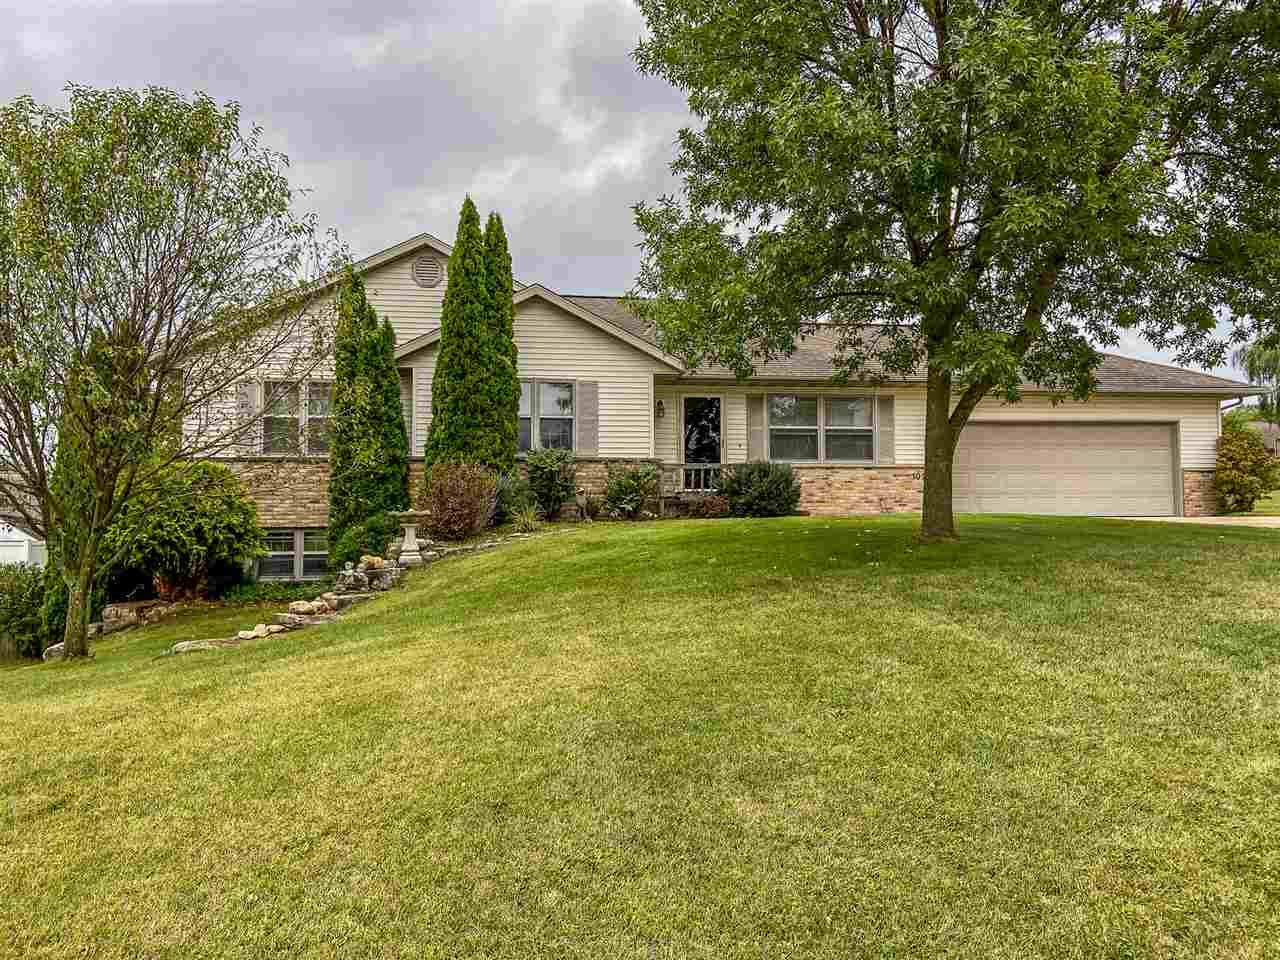 102 Partridge Ct, Beaver Dam, WI 53916 - #: 1892550